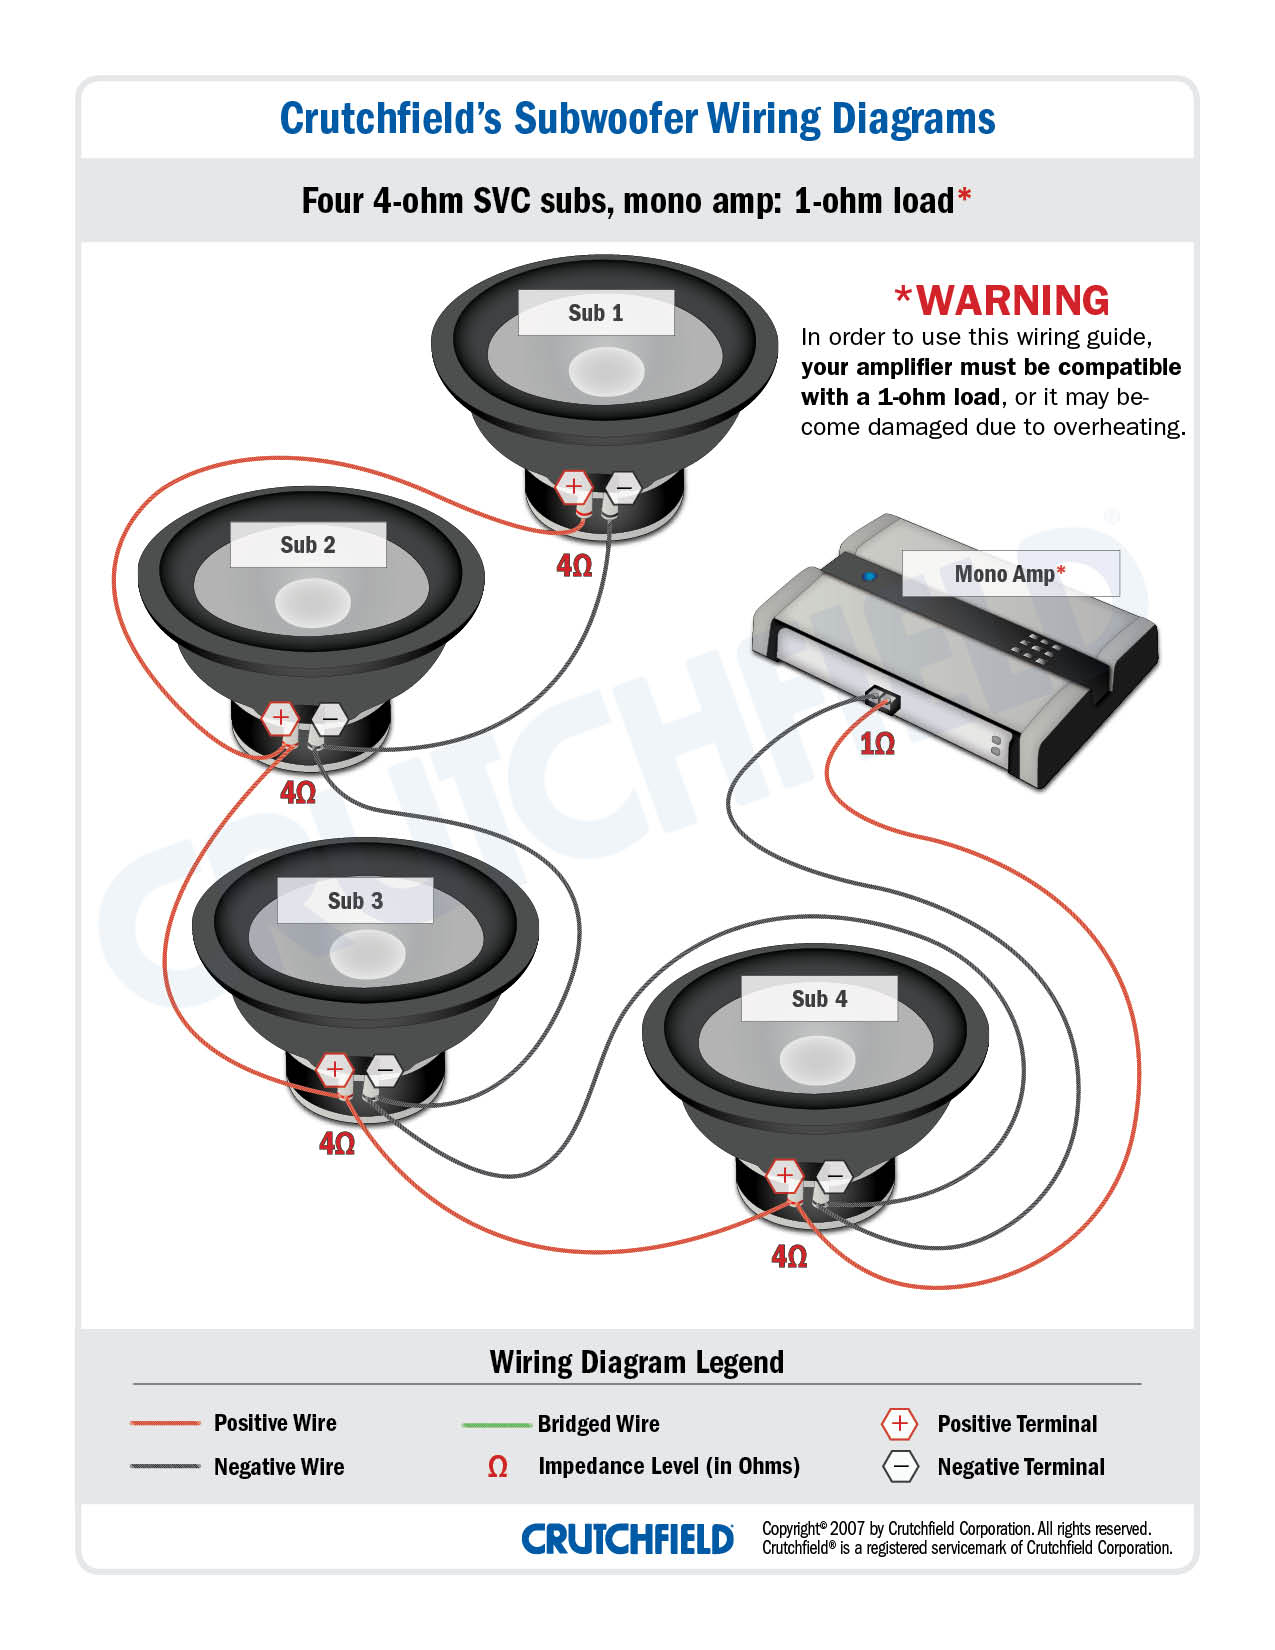 4 SVC 4 ohm mono low imp wiring subwoofers what's all this about ohms? crutchfield wiring diagrams at cos-gaming.co